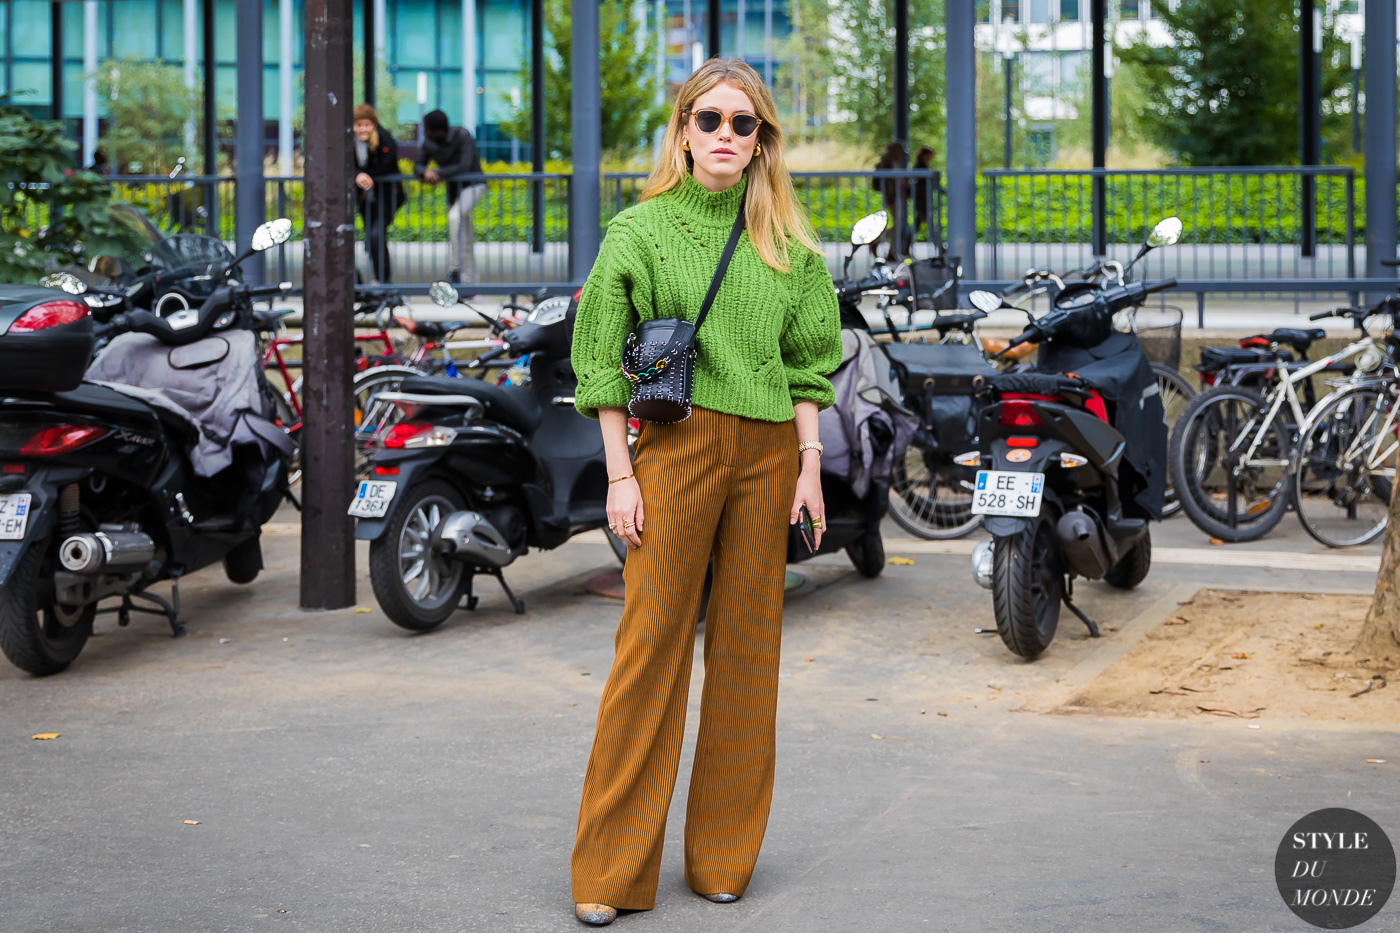 Annabel Rosendahl by STYLEDUMONDE Street Style Fashion Photography_48A0110